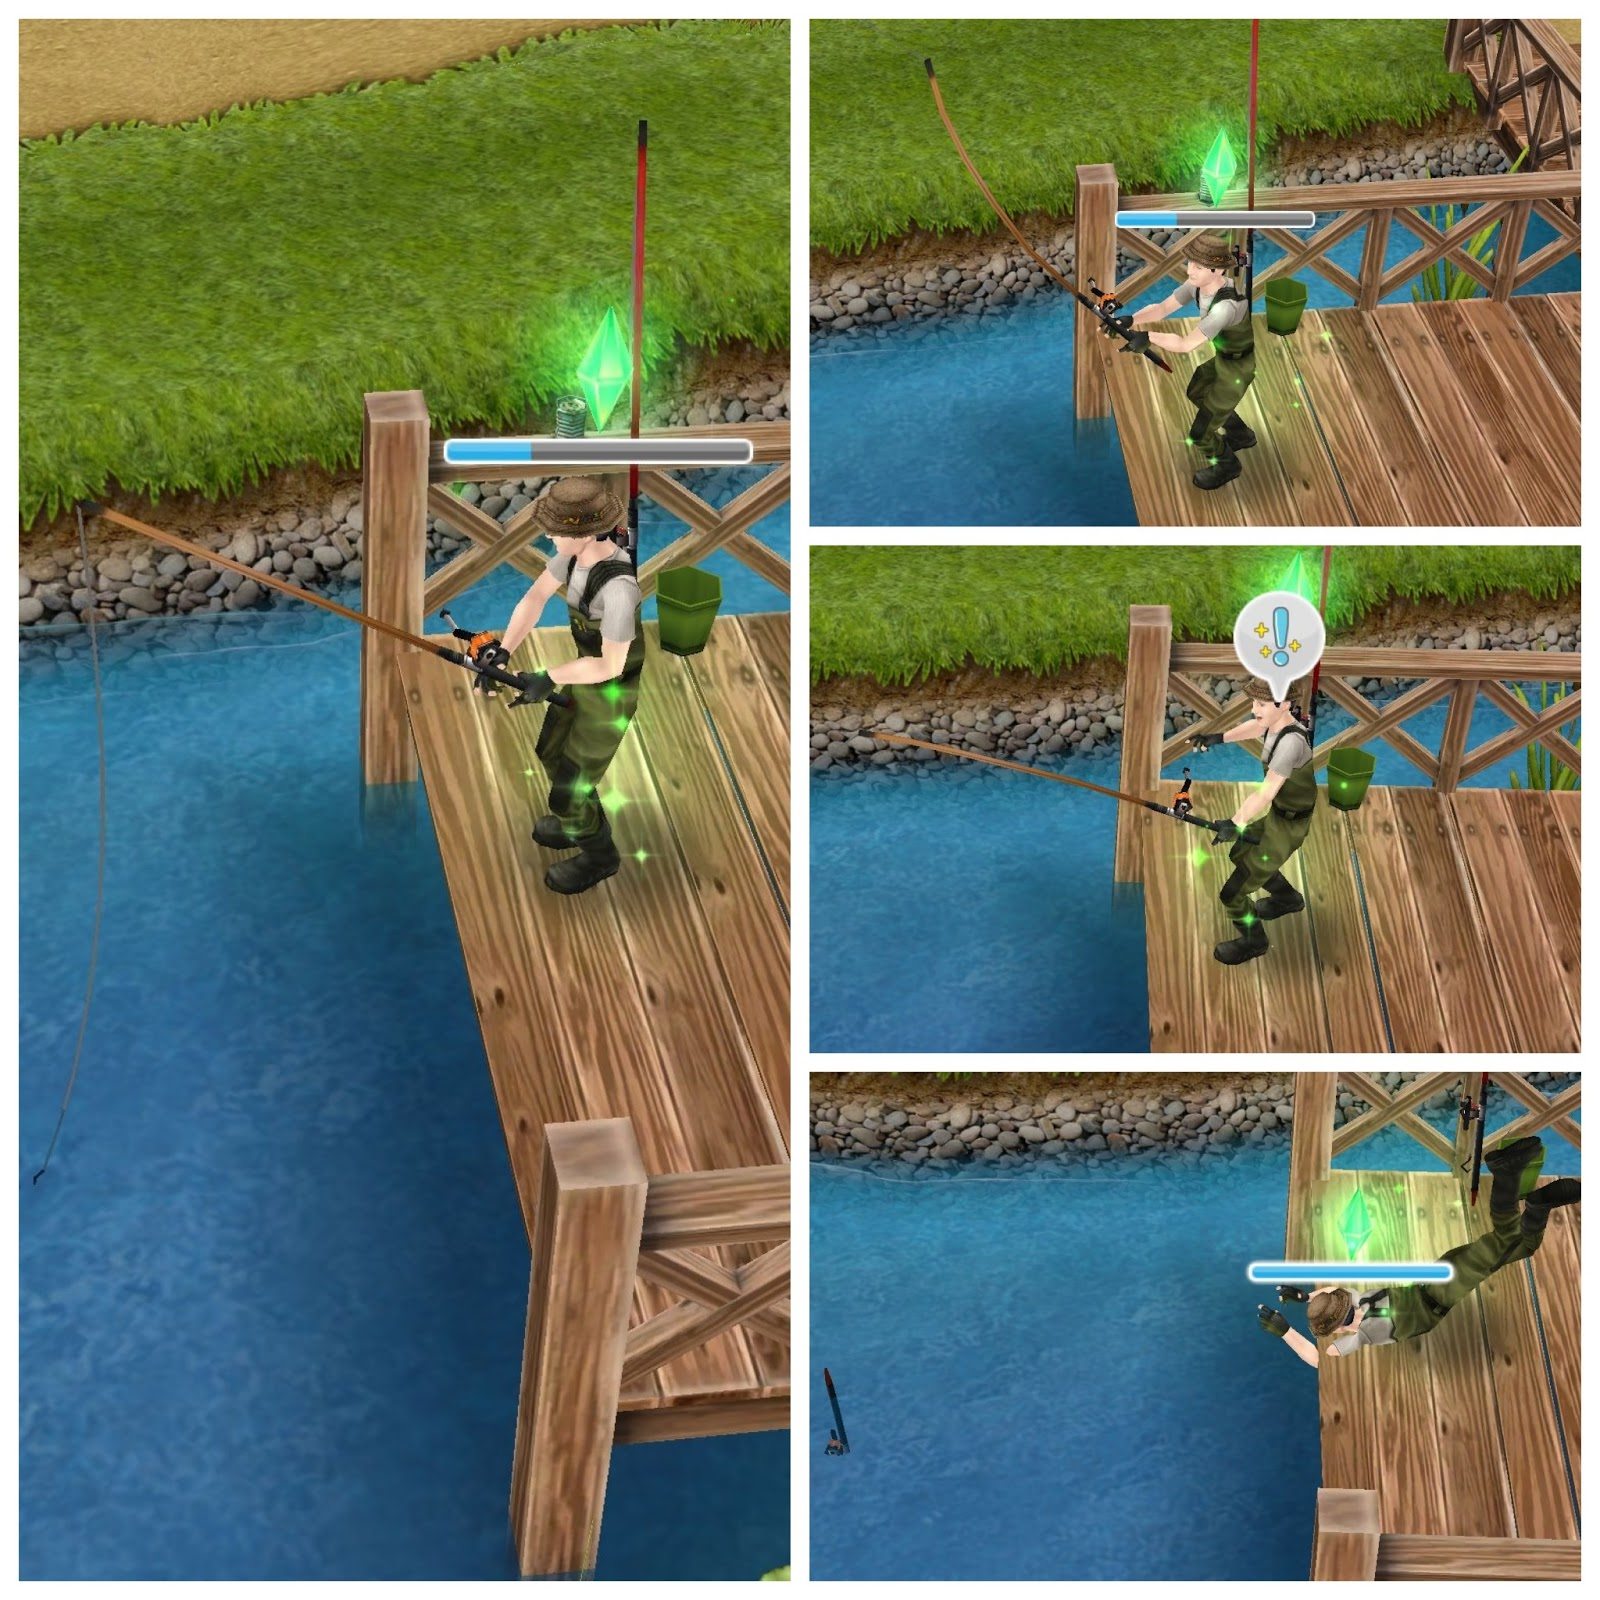 Derang: Woodworking Bench The Sims